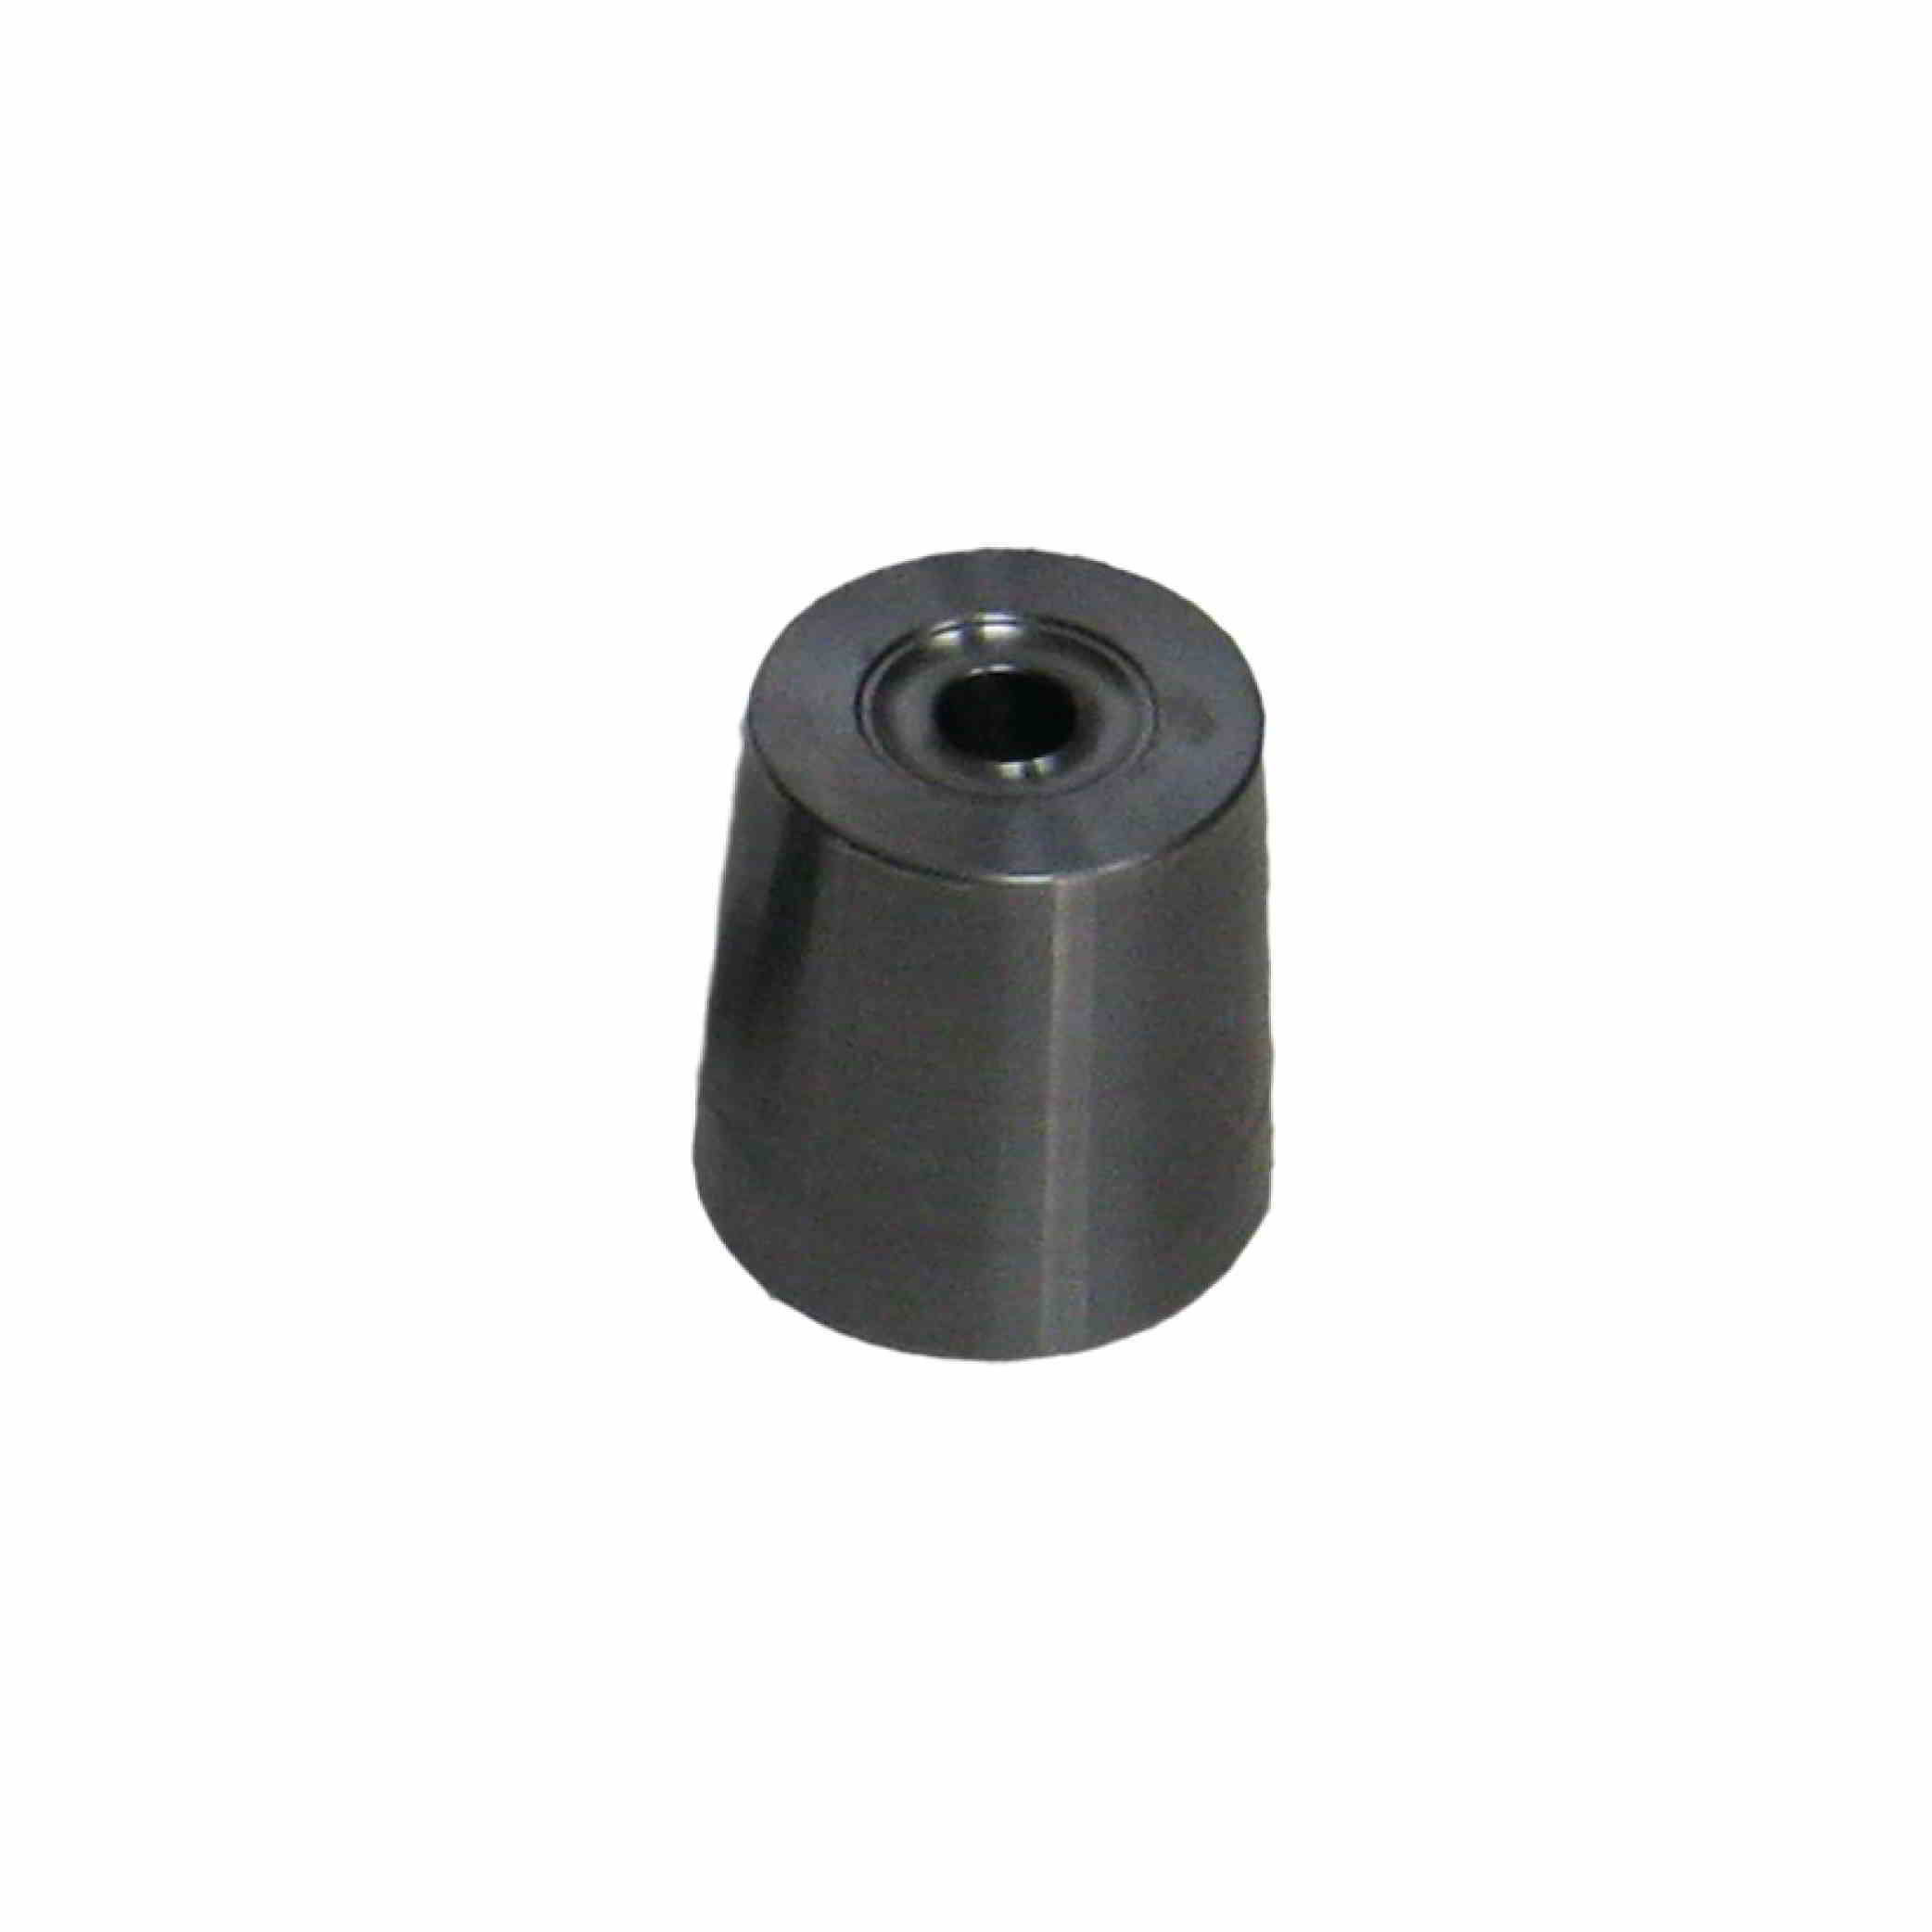 GROMMET INSERTING DIE – FOR GROMMETS WITH SETTING SPURS OR CONICAL POINTS Trade Size:0